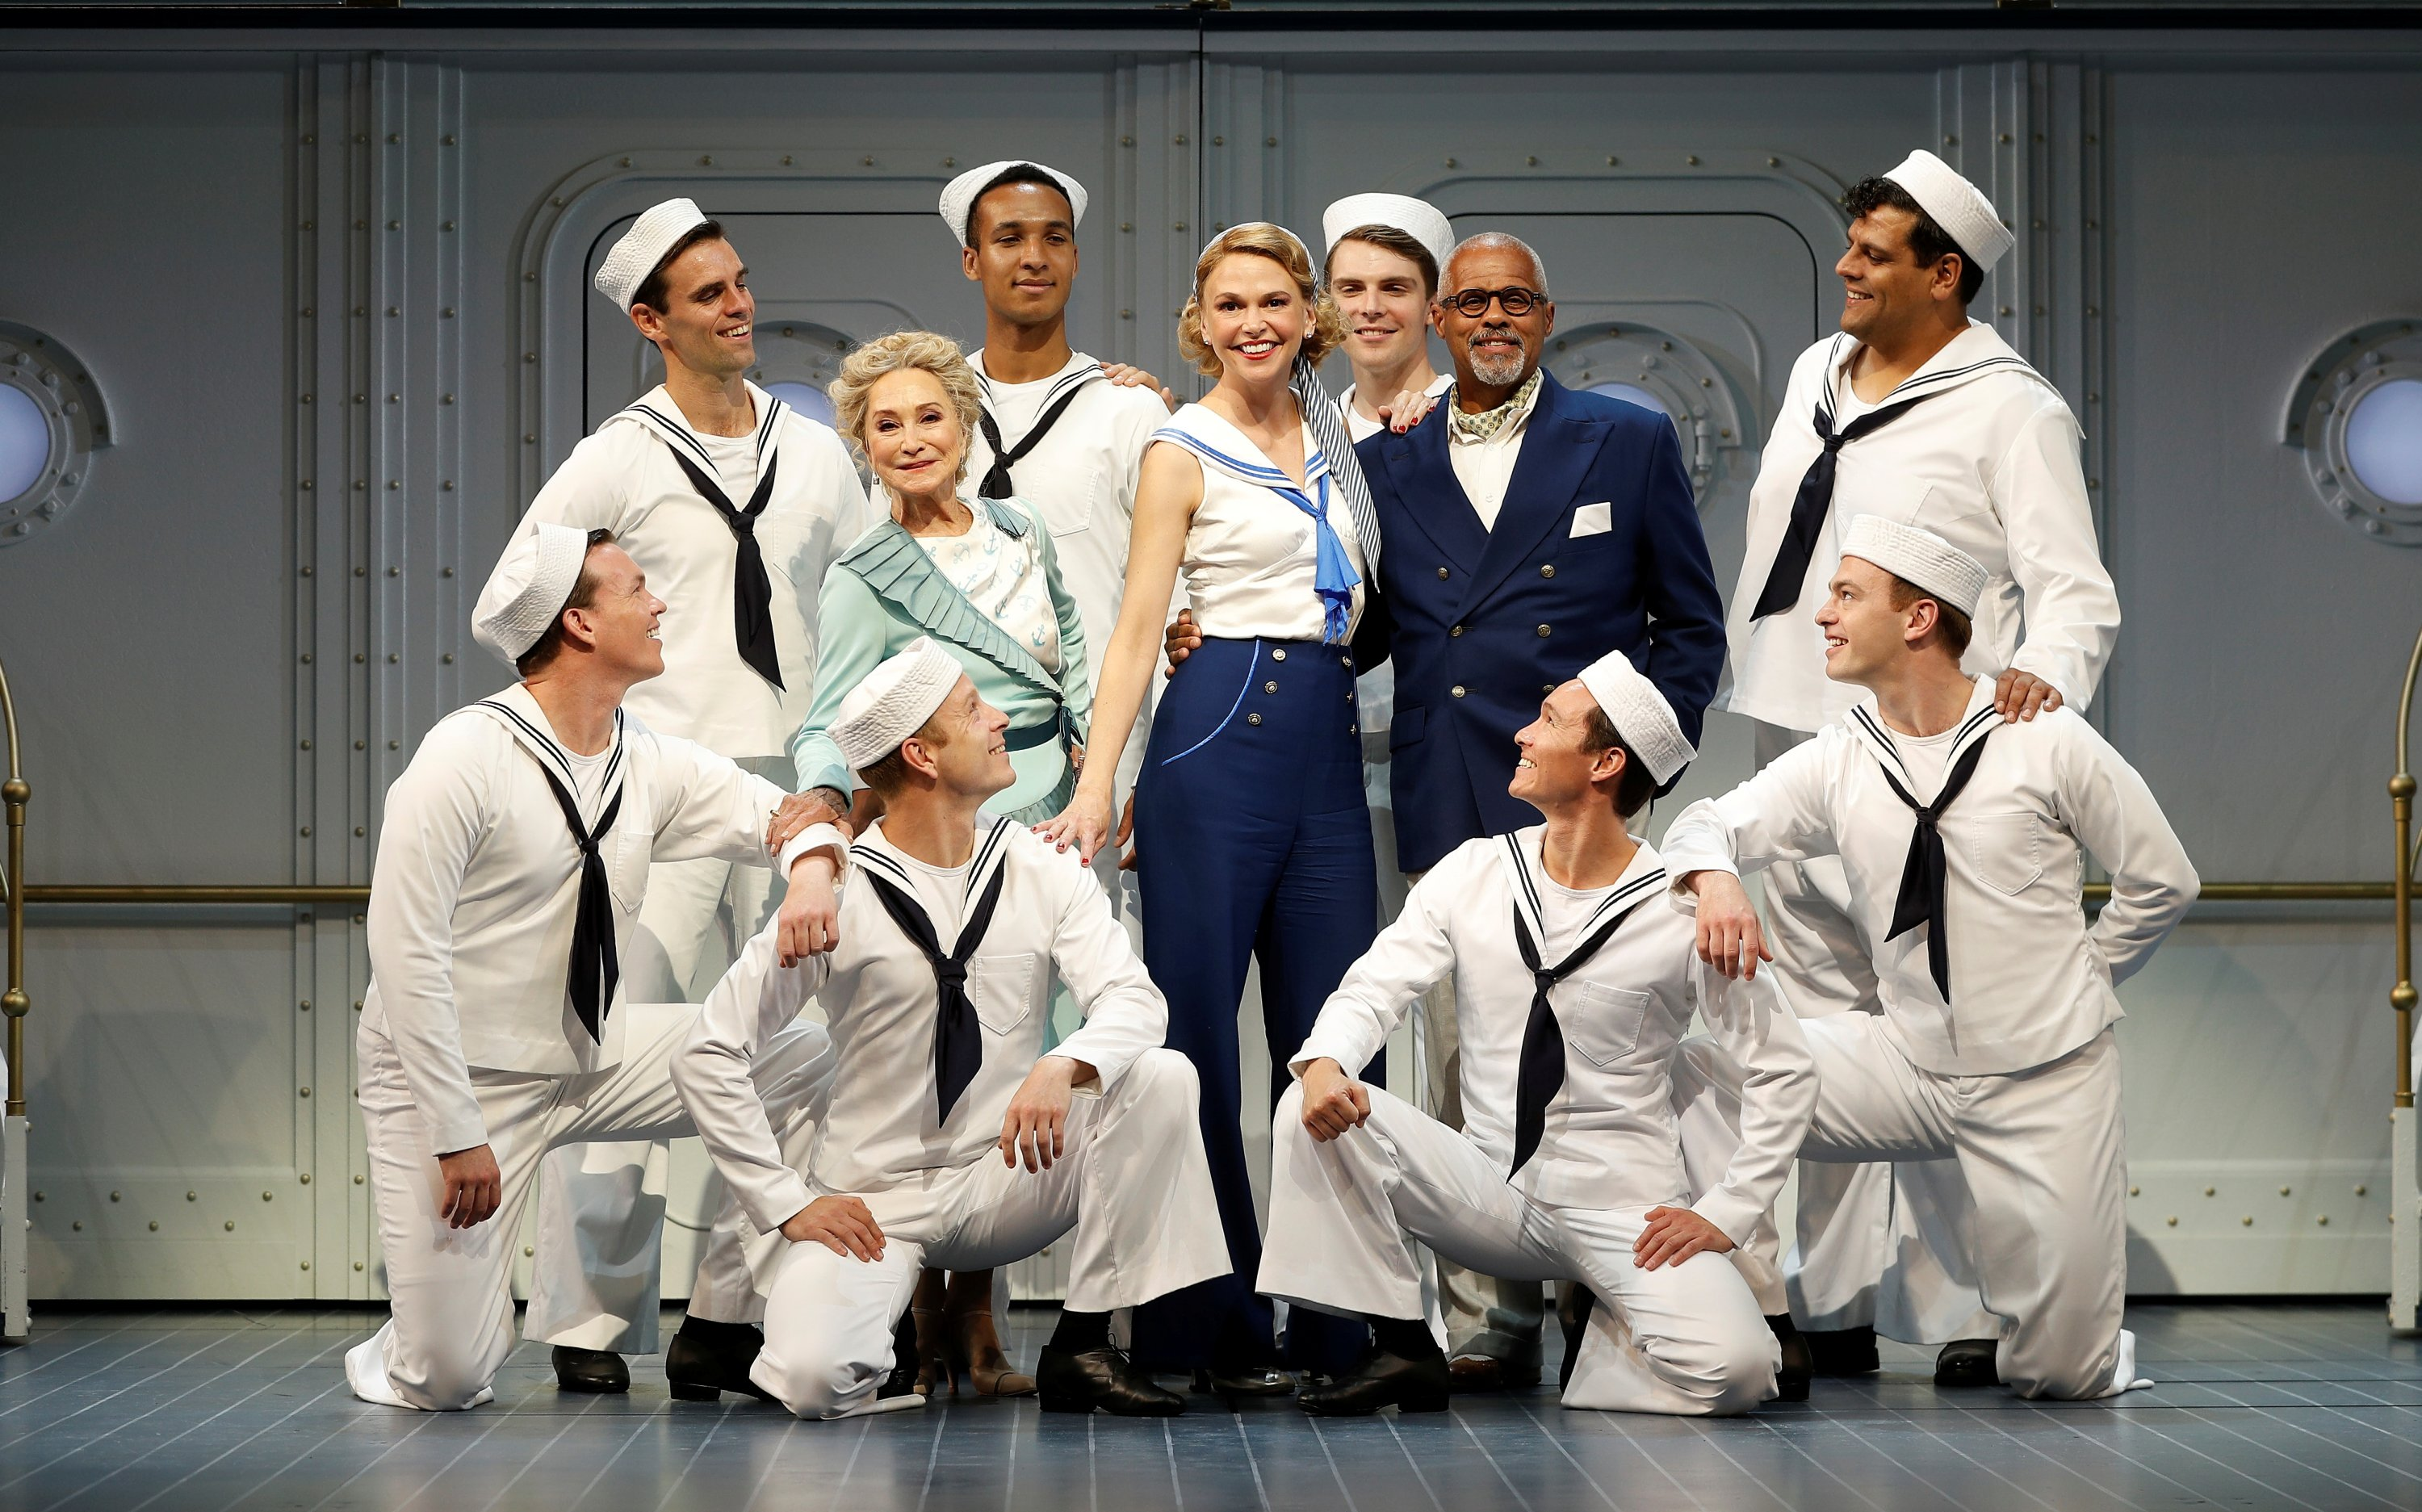 Felicity Kendal, Sutton Foster and Gary Wilmot and some members of the cast pose for a photograph during a media day for the show 'Anything Goes,' running at the Barbican Centre theater, in London, Great Britain, July 28, 2021. (REUTERS Photo)